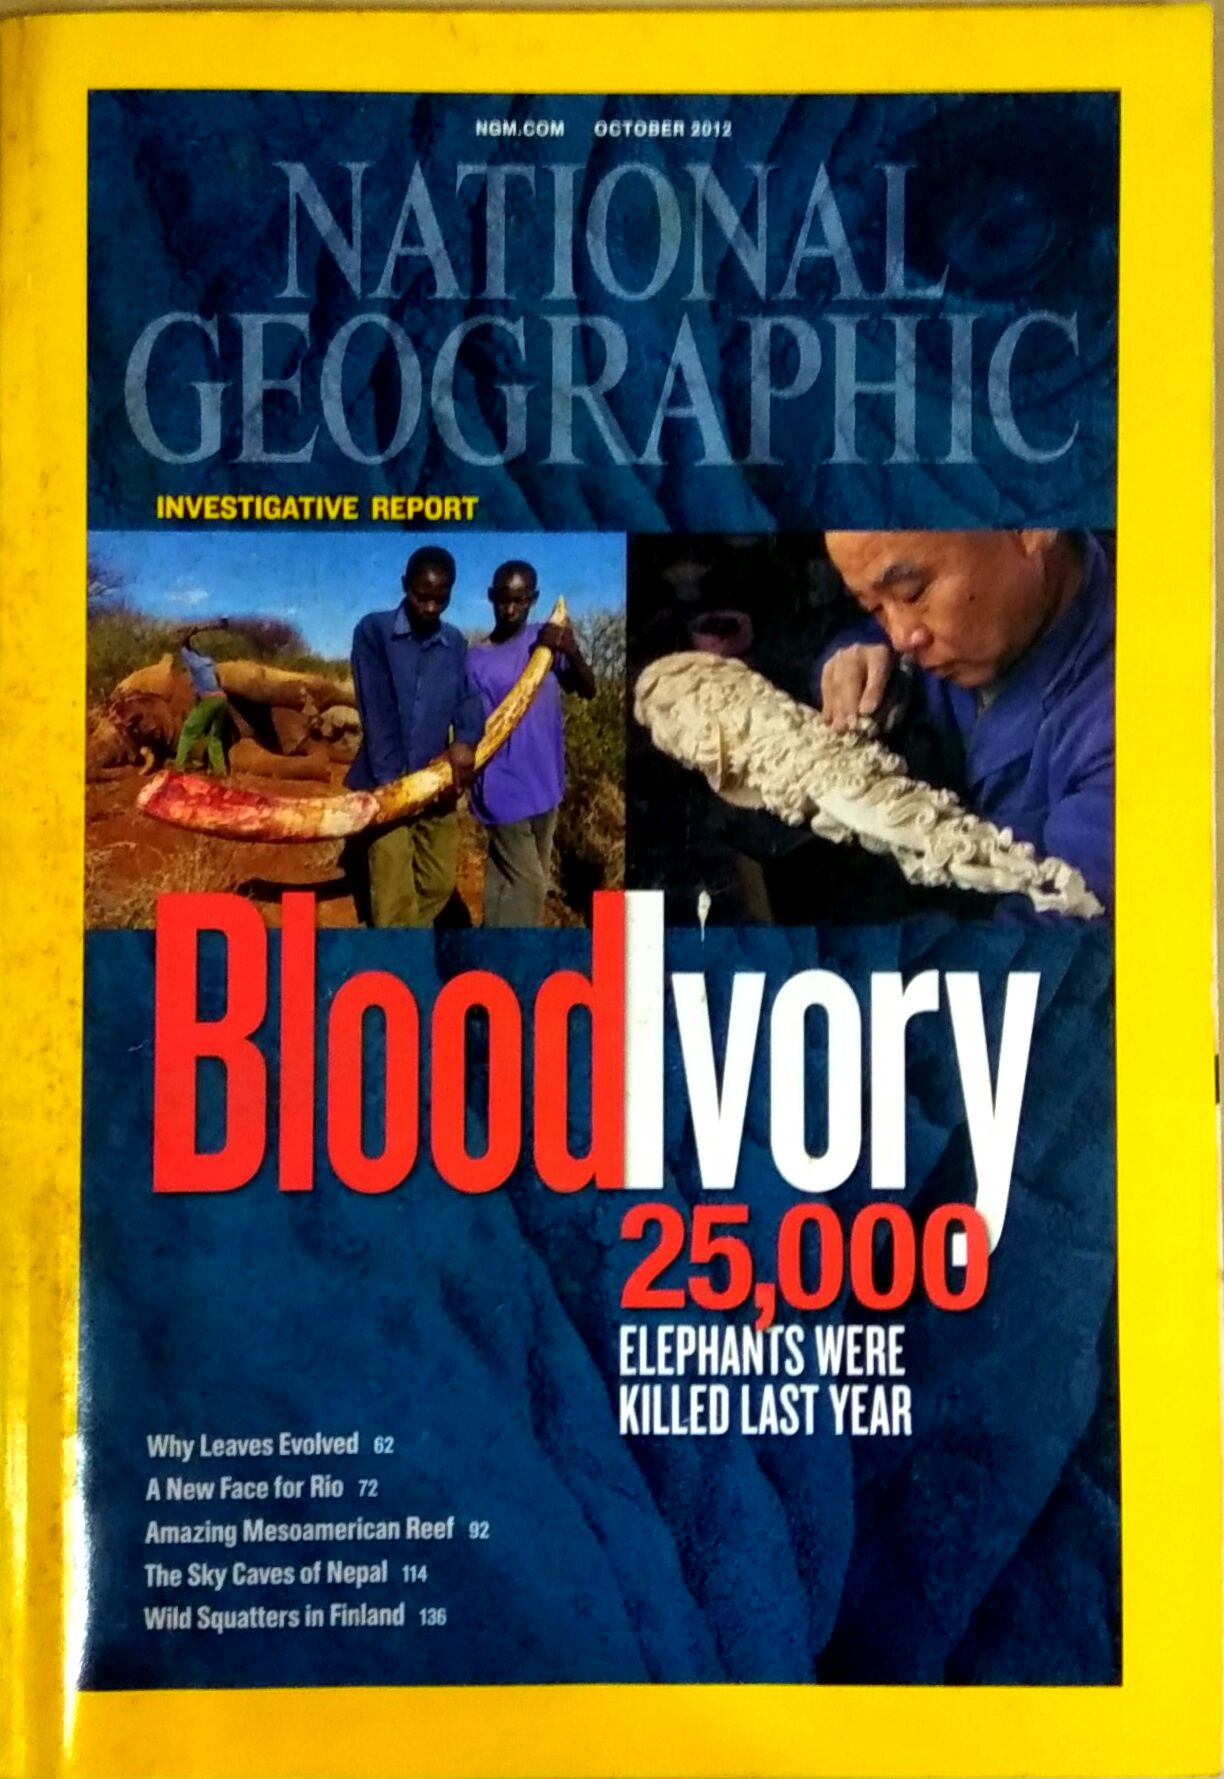 National geographic_21